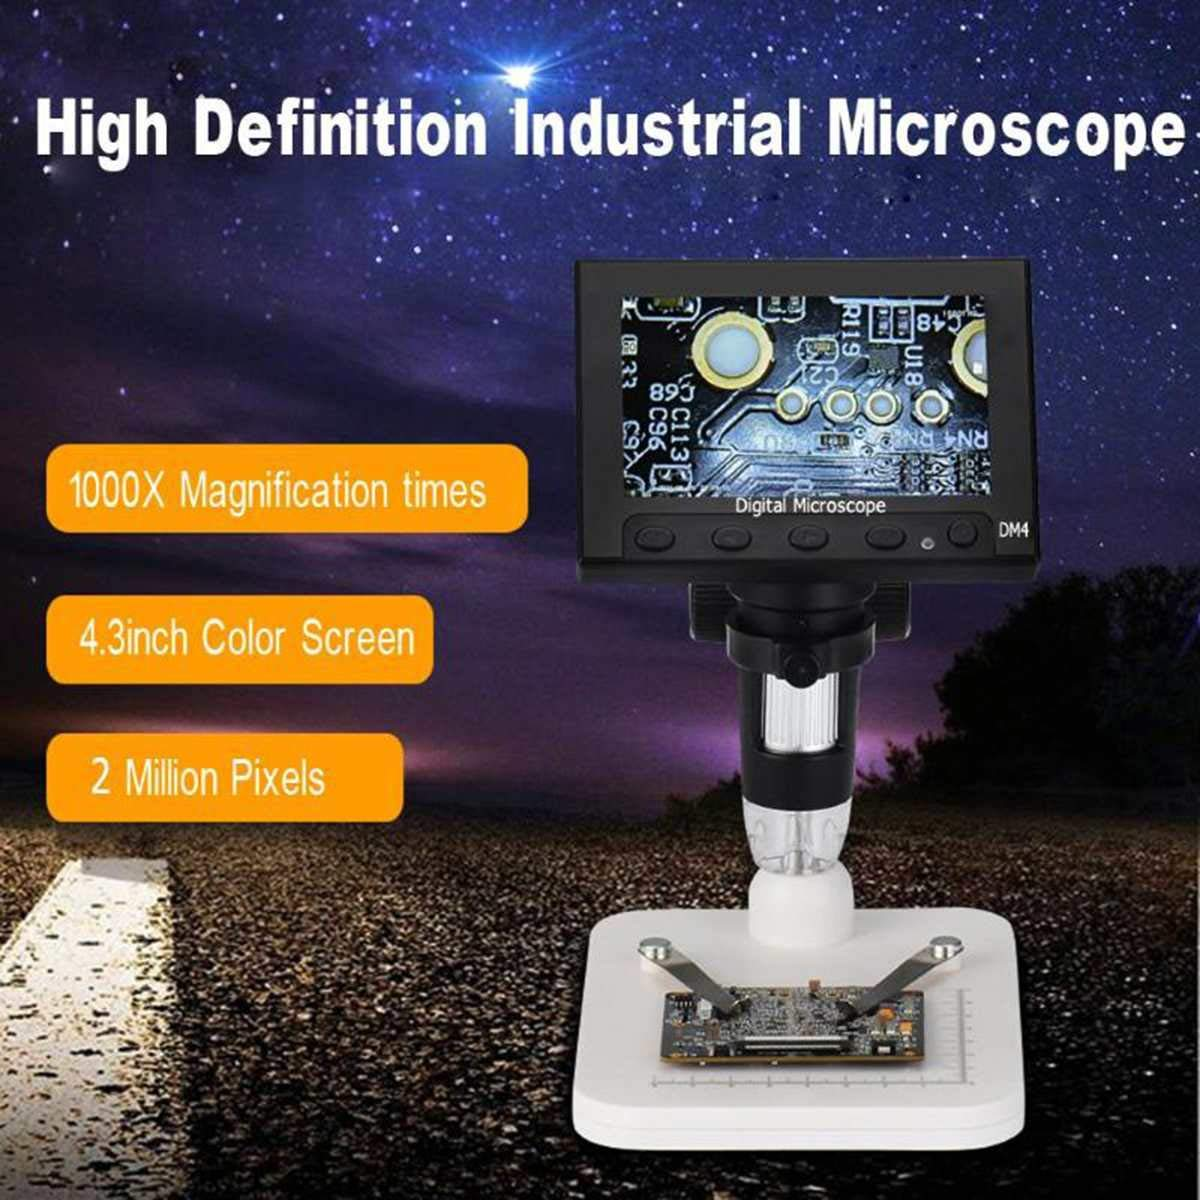 Elikliv 4.3 inch LCD Digital USB Microscope Endoscope Record 1000X Magnification Zoom, 8 Adjustable LED Light, Micro-SD Storage, Camera Video Recorder for Repair Soldering by Elikliv